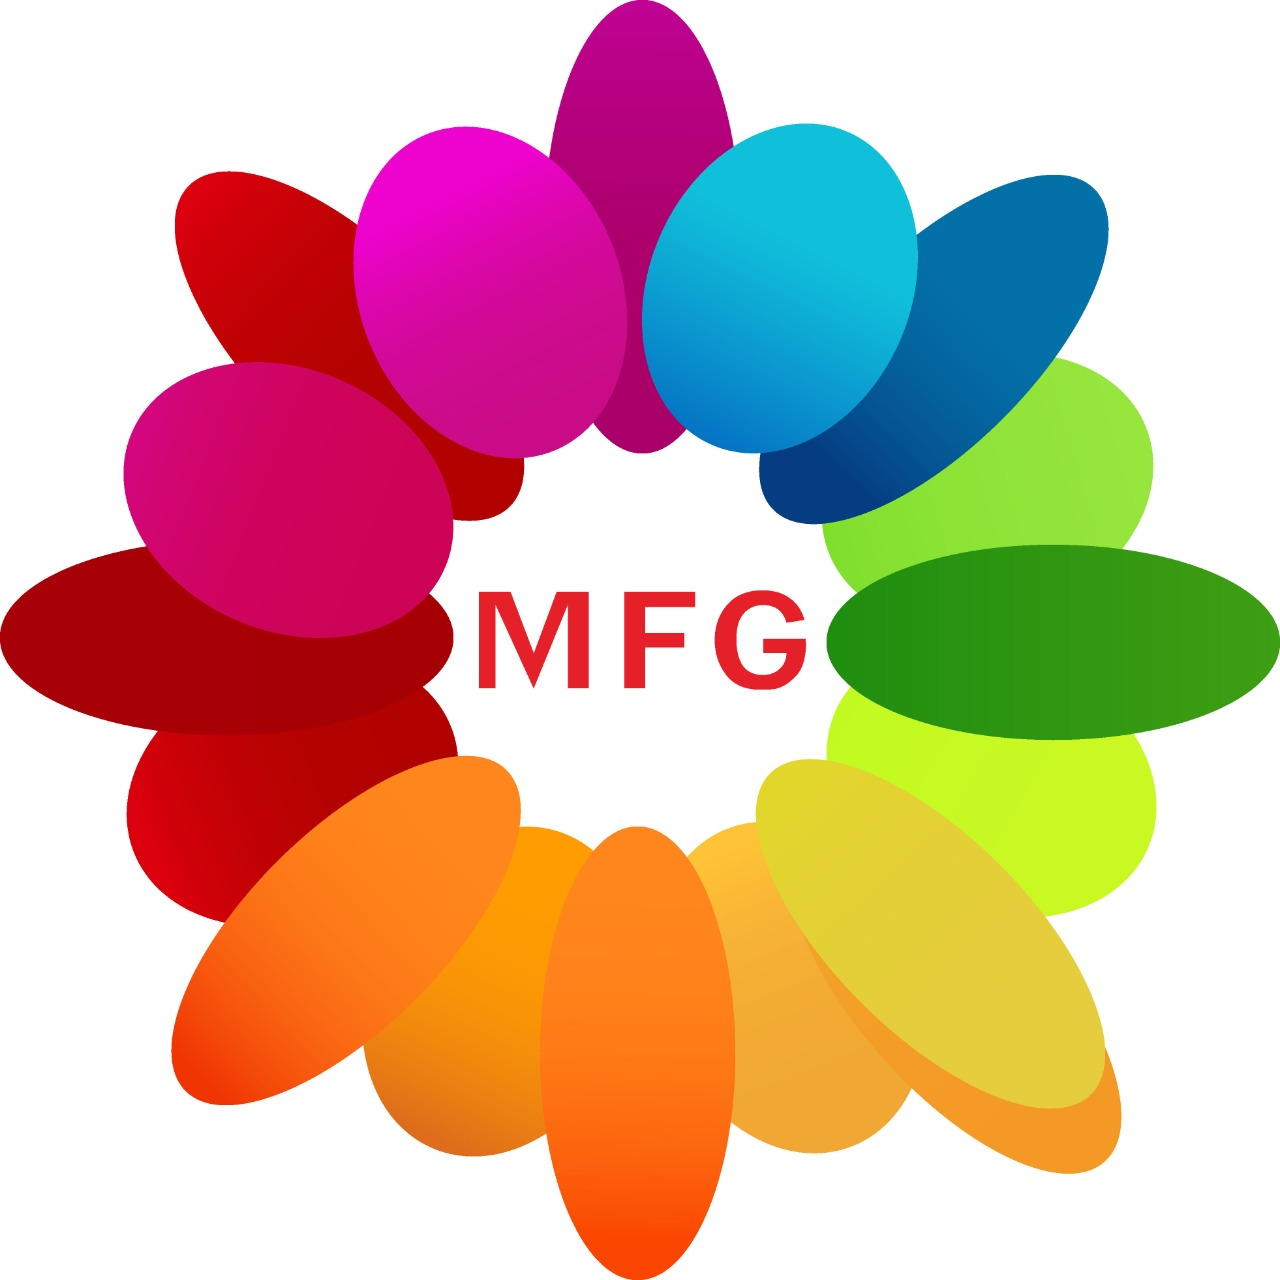 Bunch of red roses & white lilies  with 1 kg chocovanilla cake with 3 blown balloons